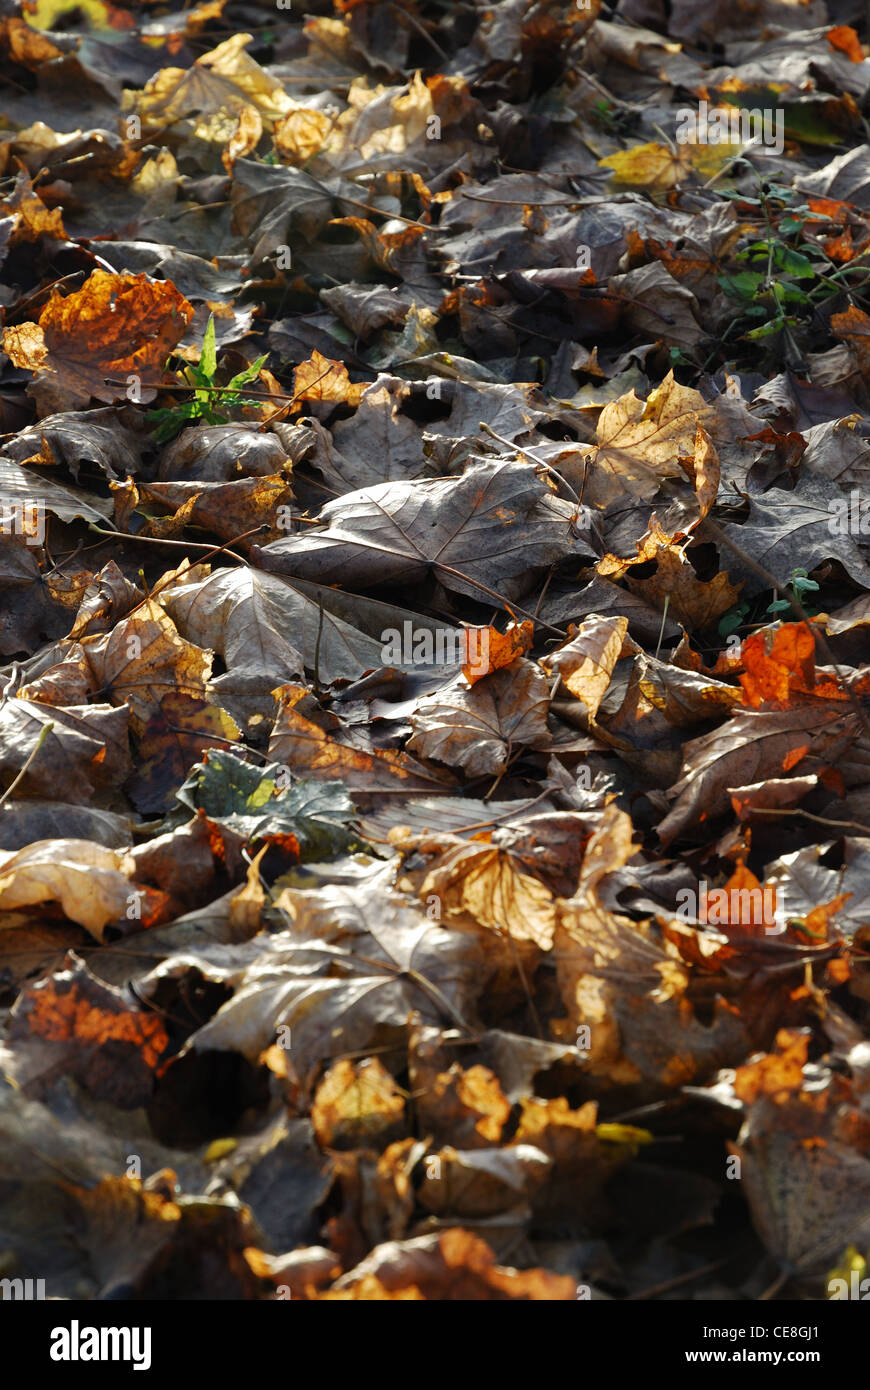 Autumnal backgrounds of dead leaves. - Stock Image